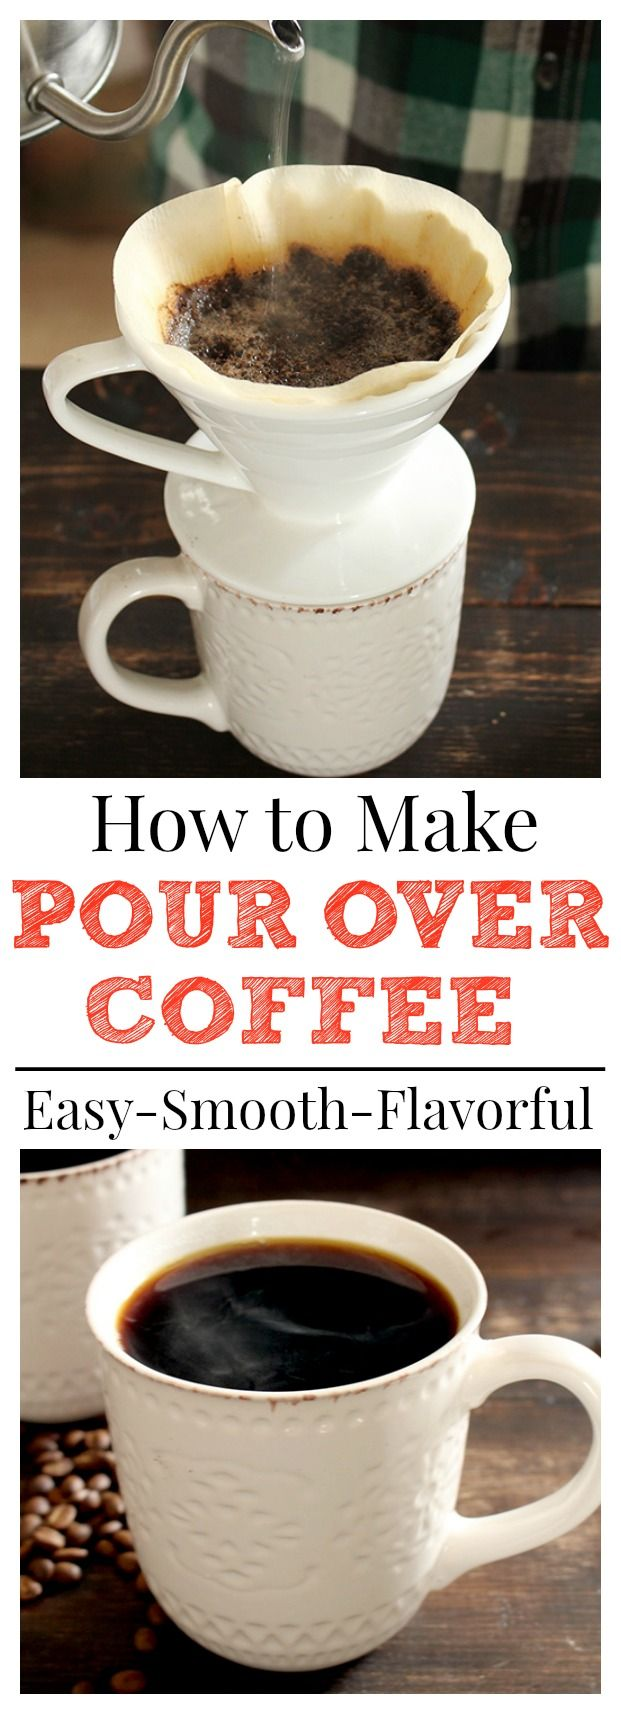 How to Make Pour Over Coffee- an easy step-by-step guide to a delicious, smooth cup of coffee!